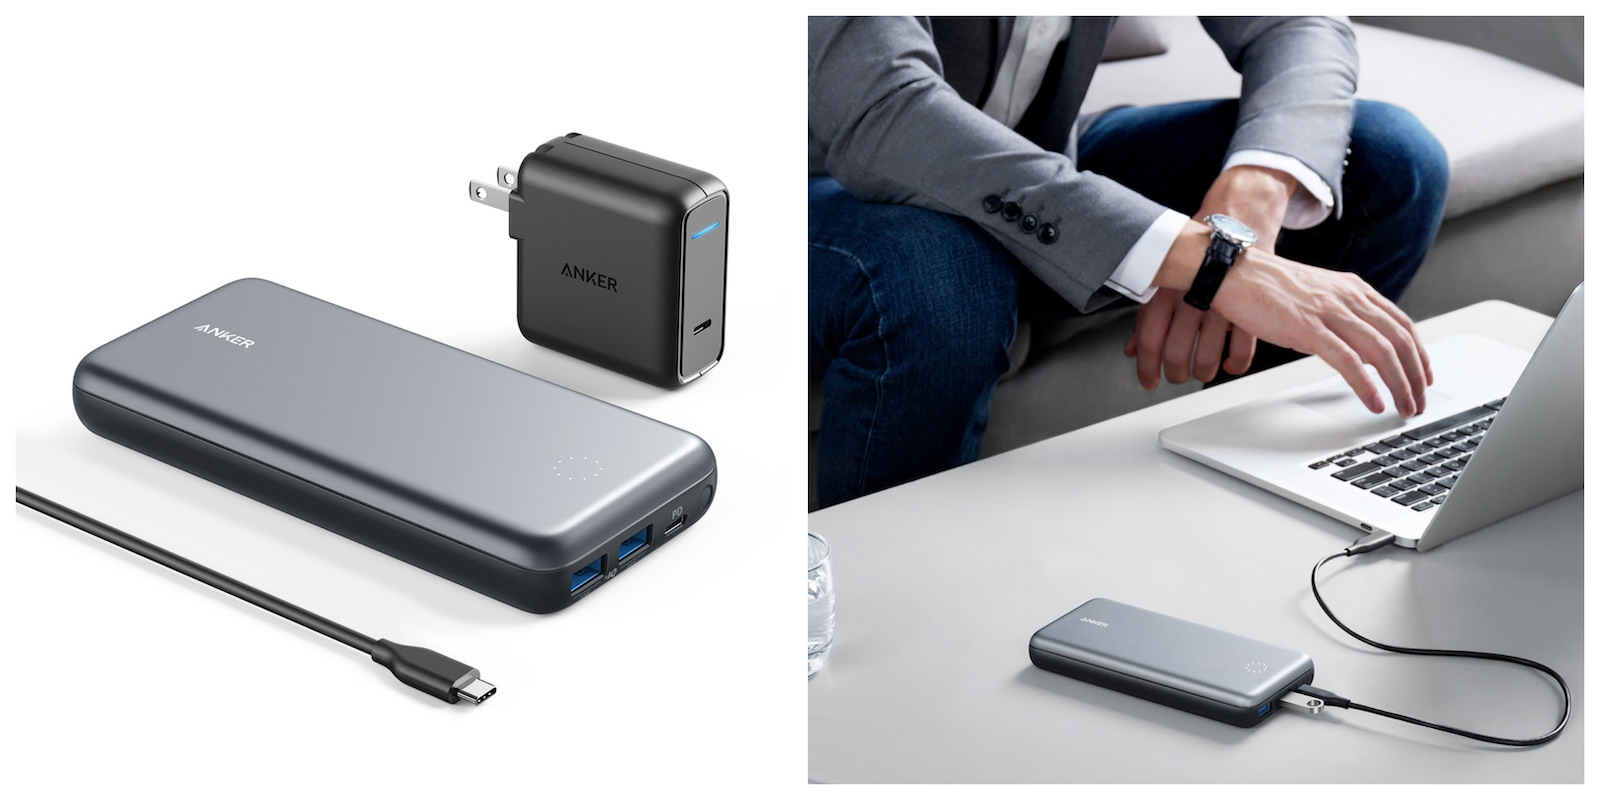 Anker PowerCore+19000 PD